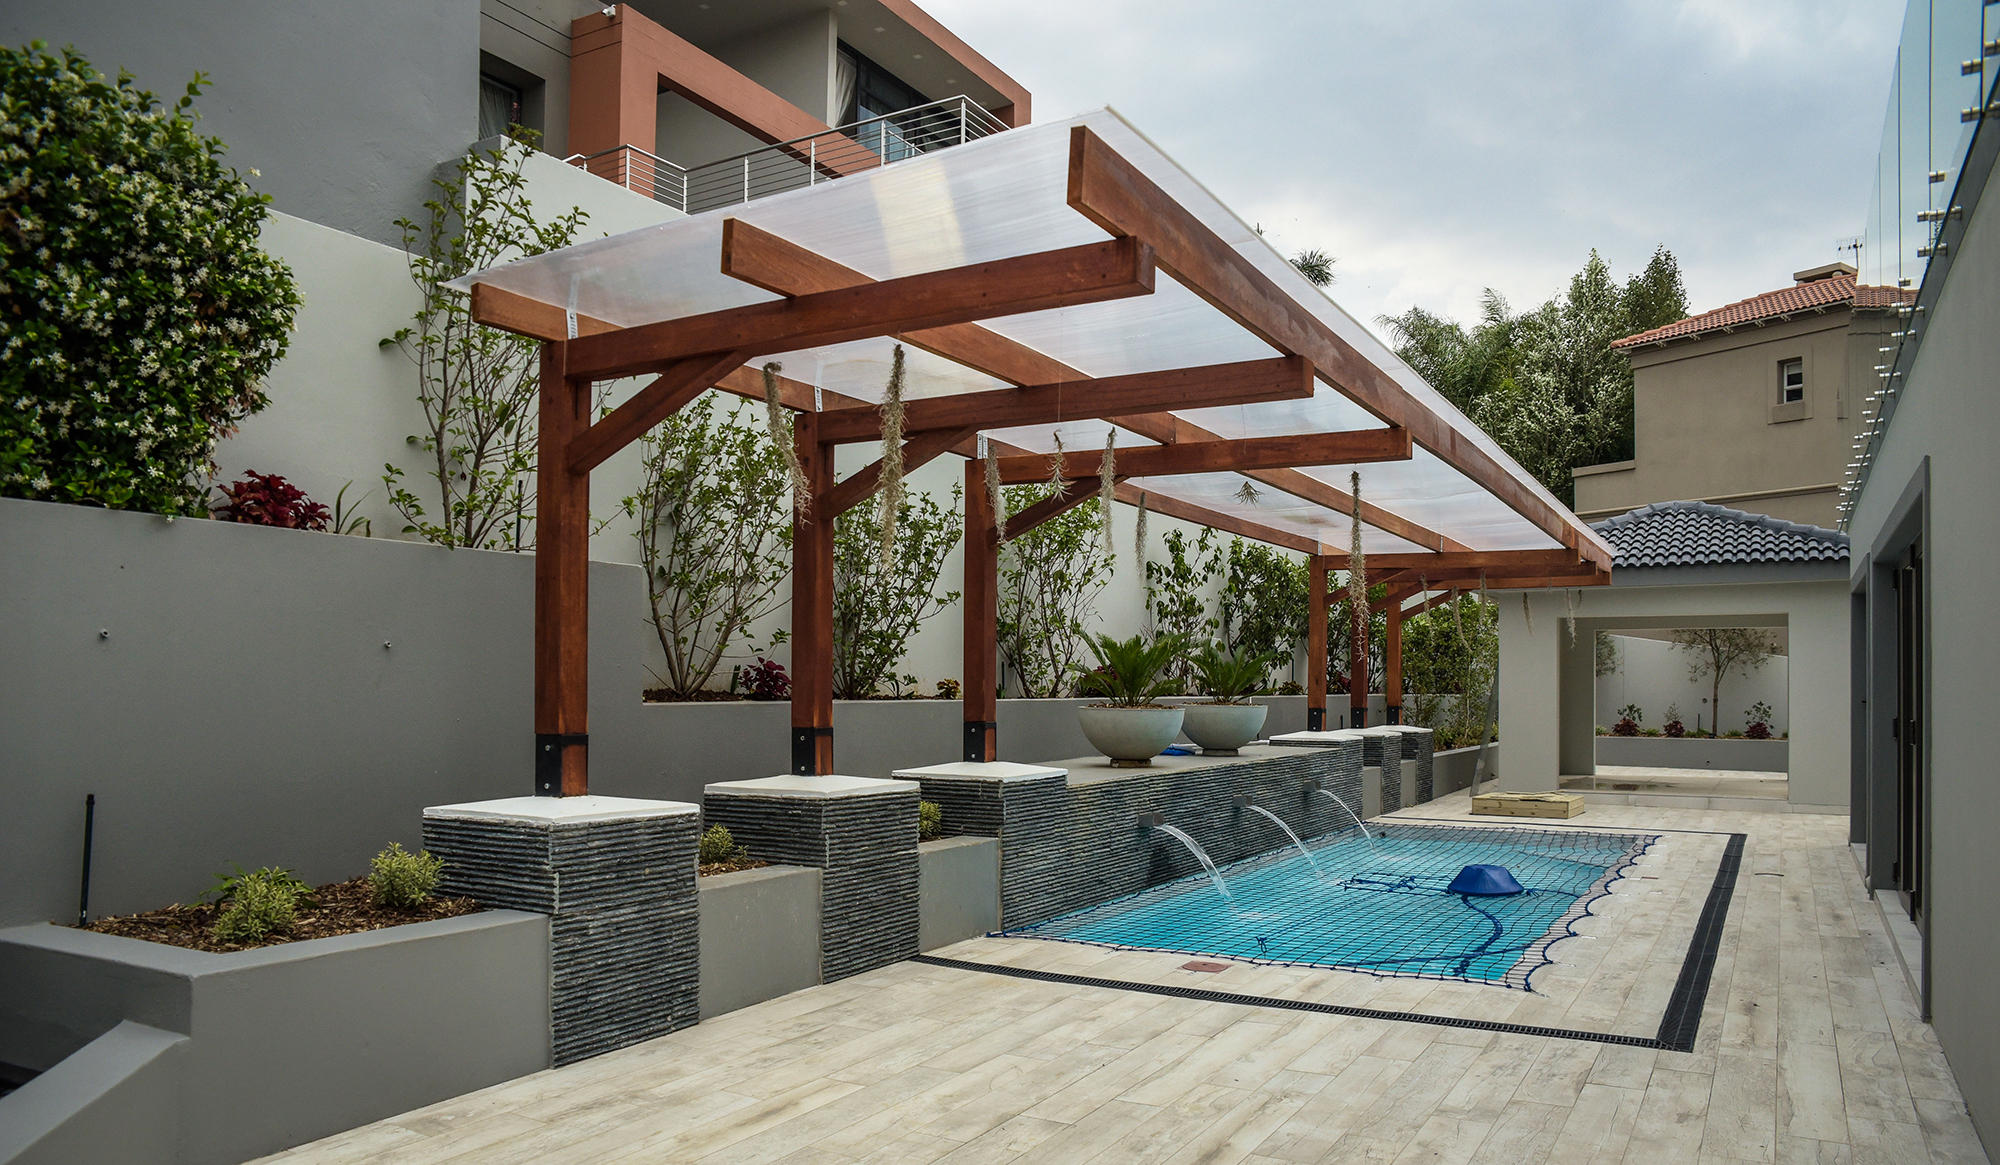 3 Reasons to build an outdoor entertainment area   FSG ...